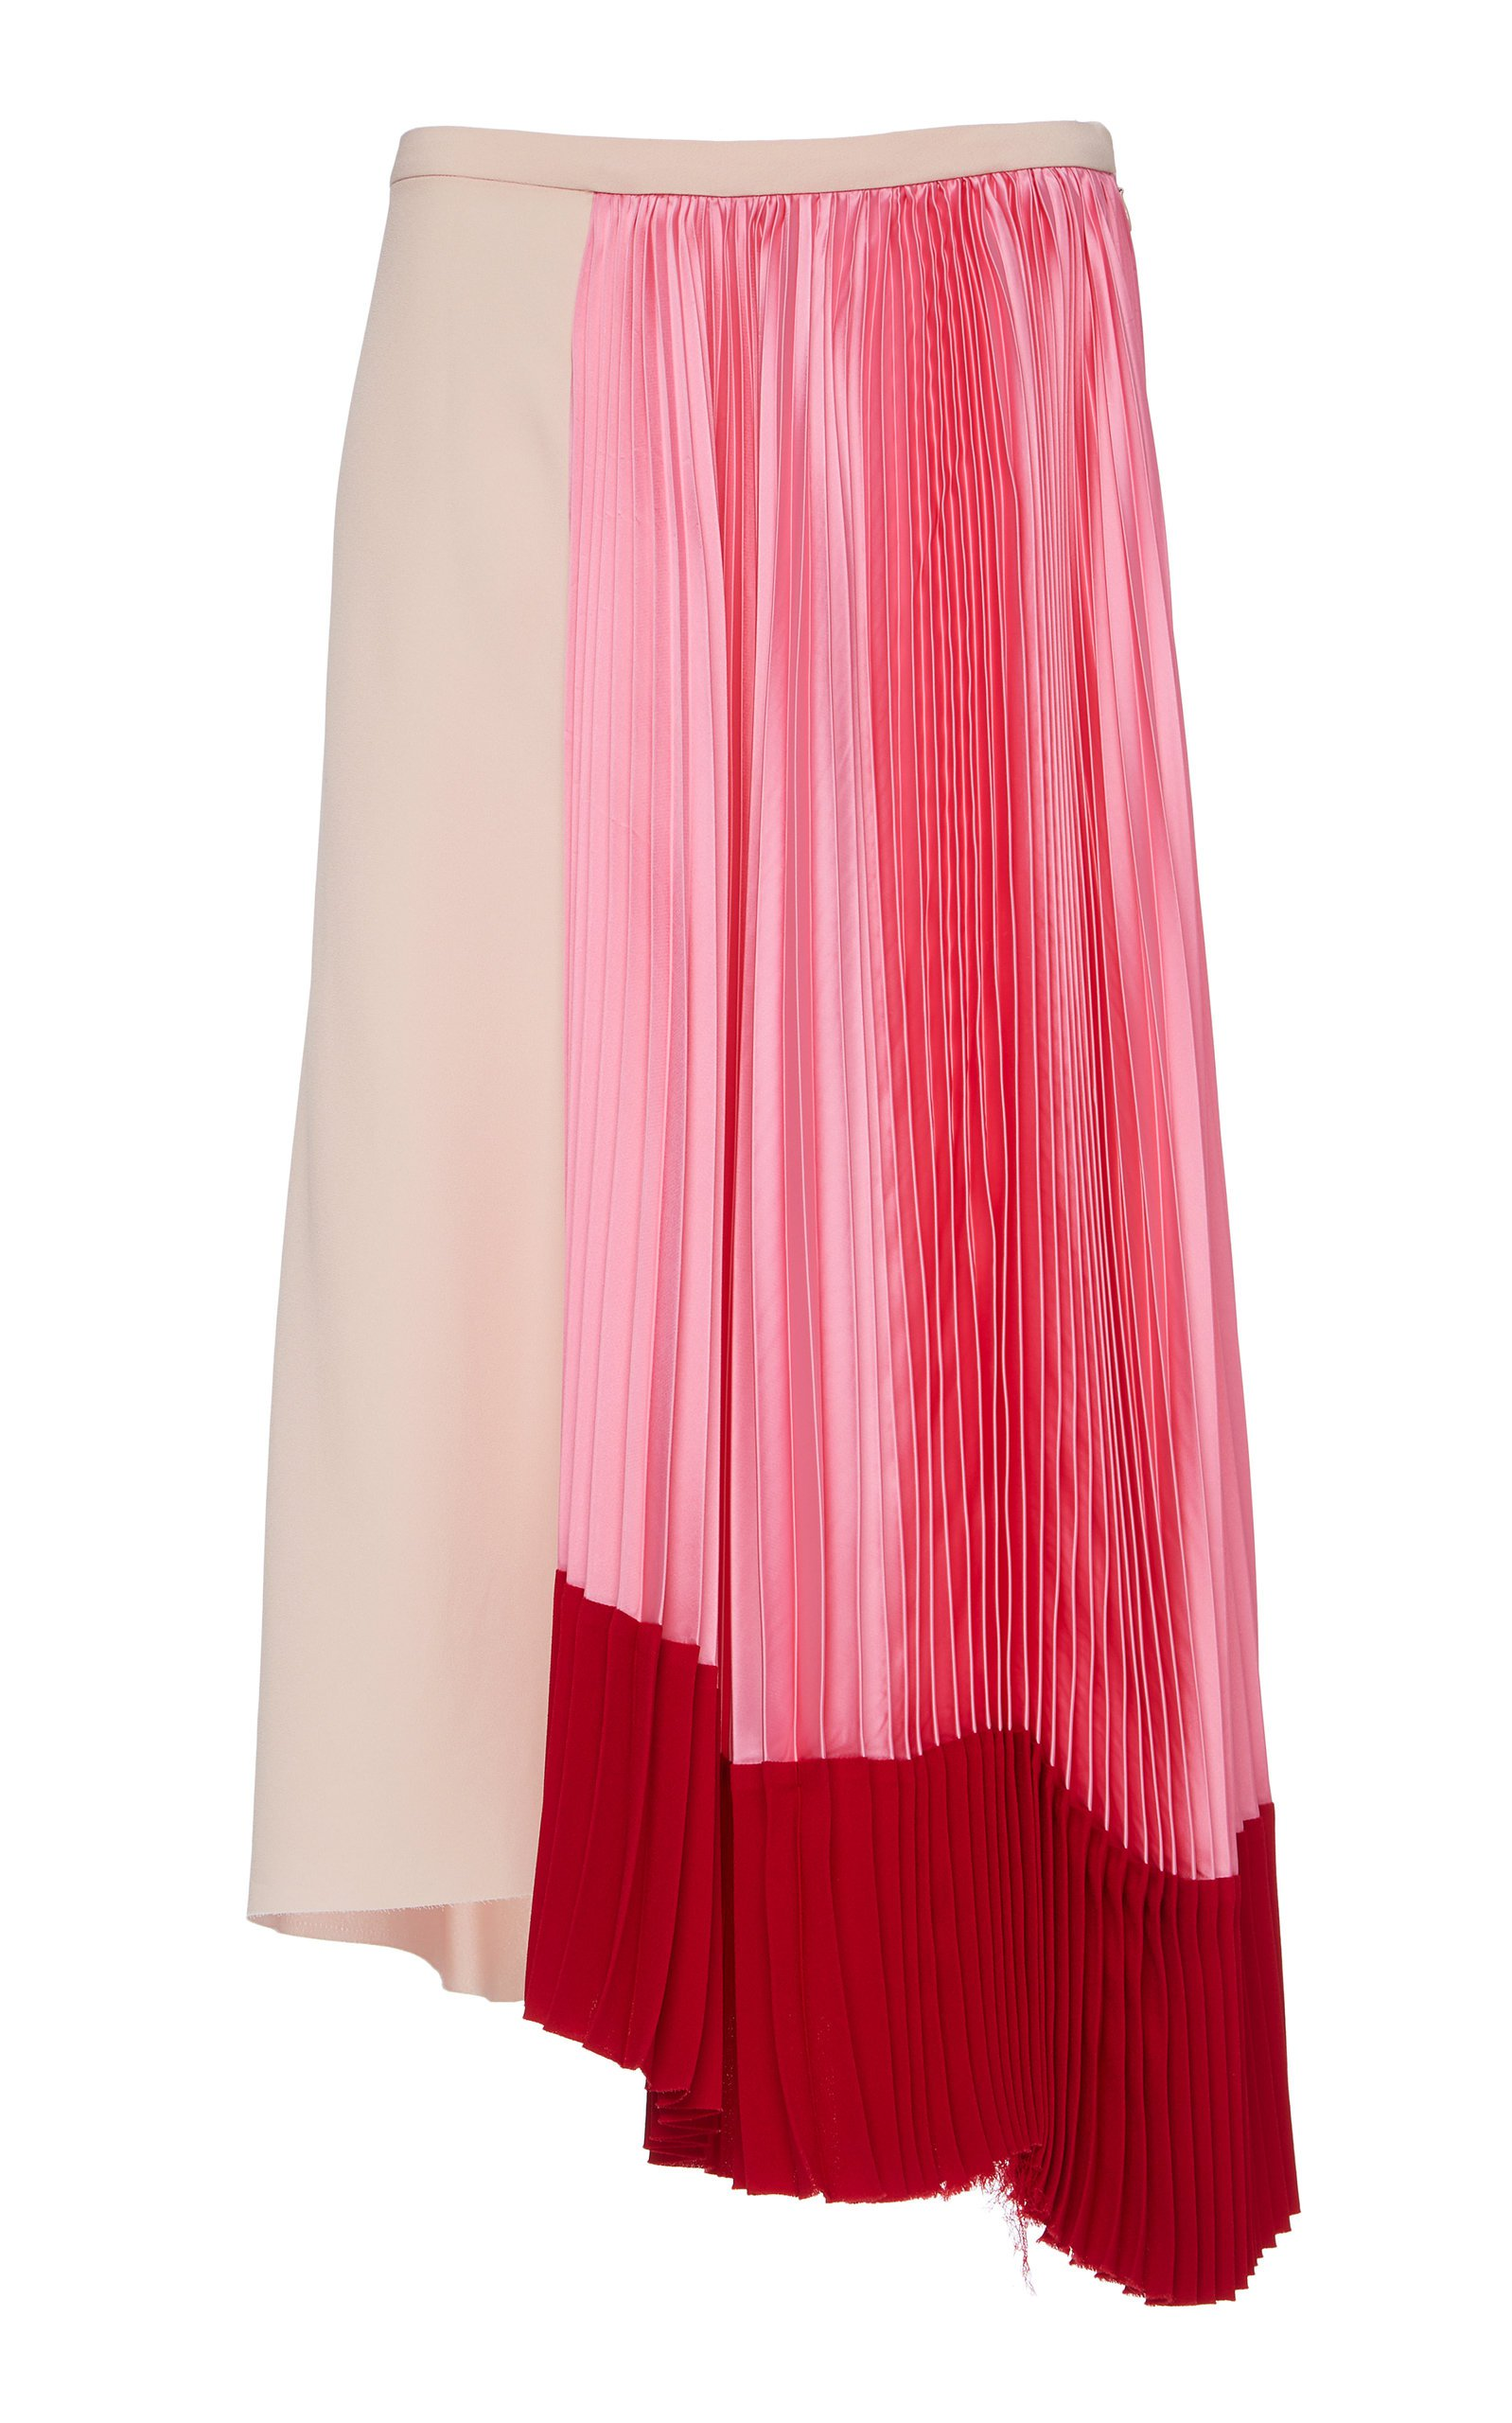 Marni Asymmetric Pleated Satin Midi Skirt